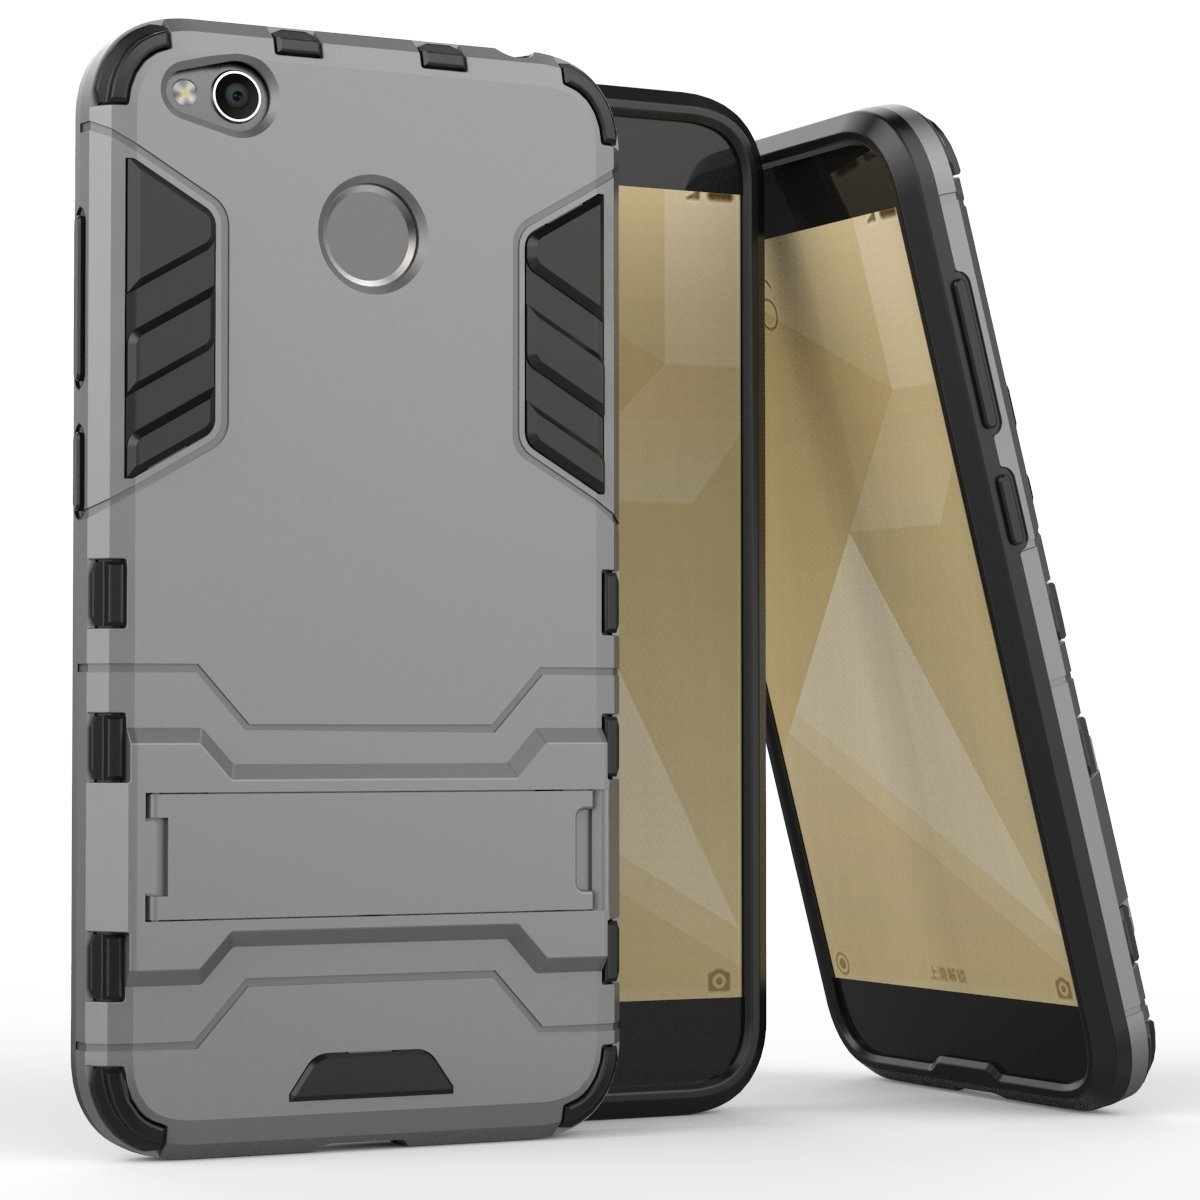 Dwaybox Xiaomi Redmi Note 4 4x Armor Case 2 In 1 Aluminium Tempered Glass Hard For Black Gold Hybrid Heavy Duty Back Cover With Kickstand